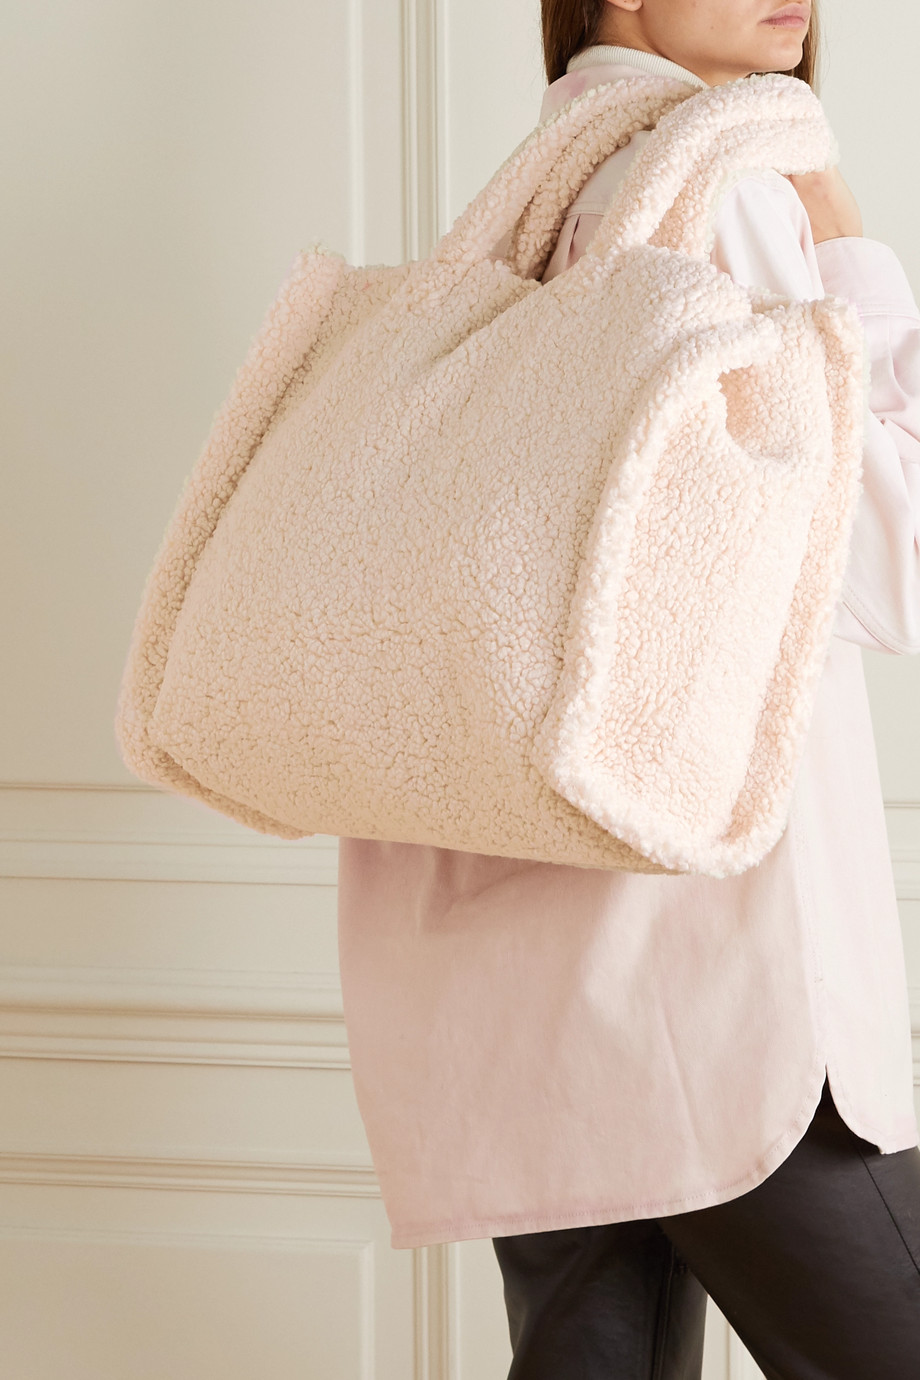 Stand Studio Lola faux shearling tote